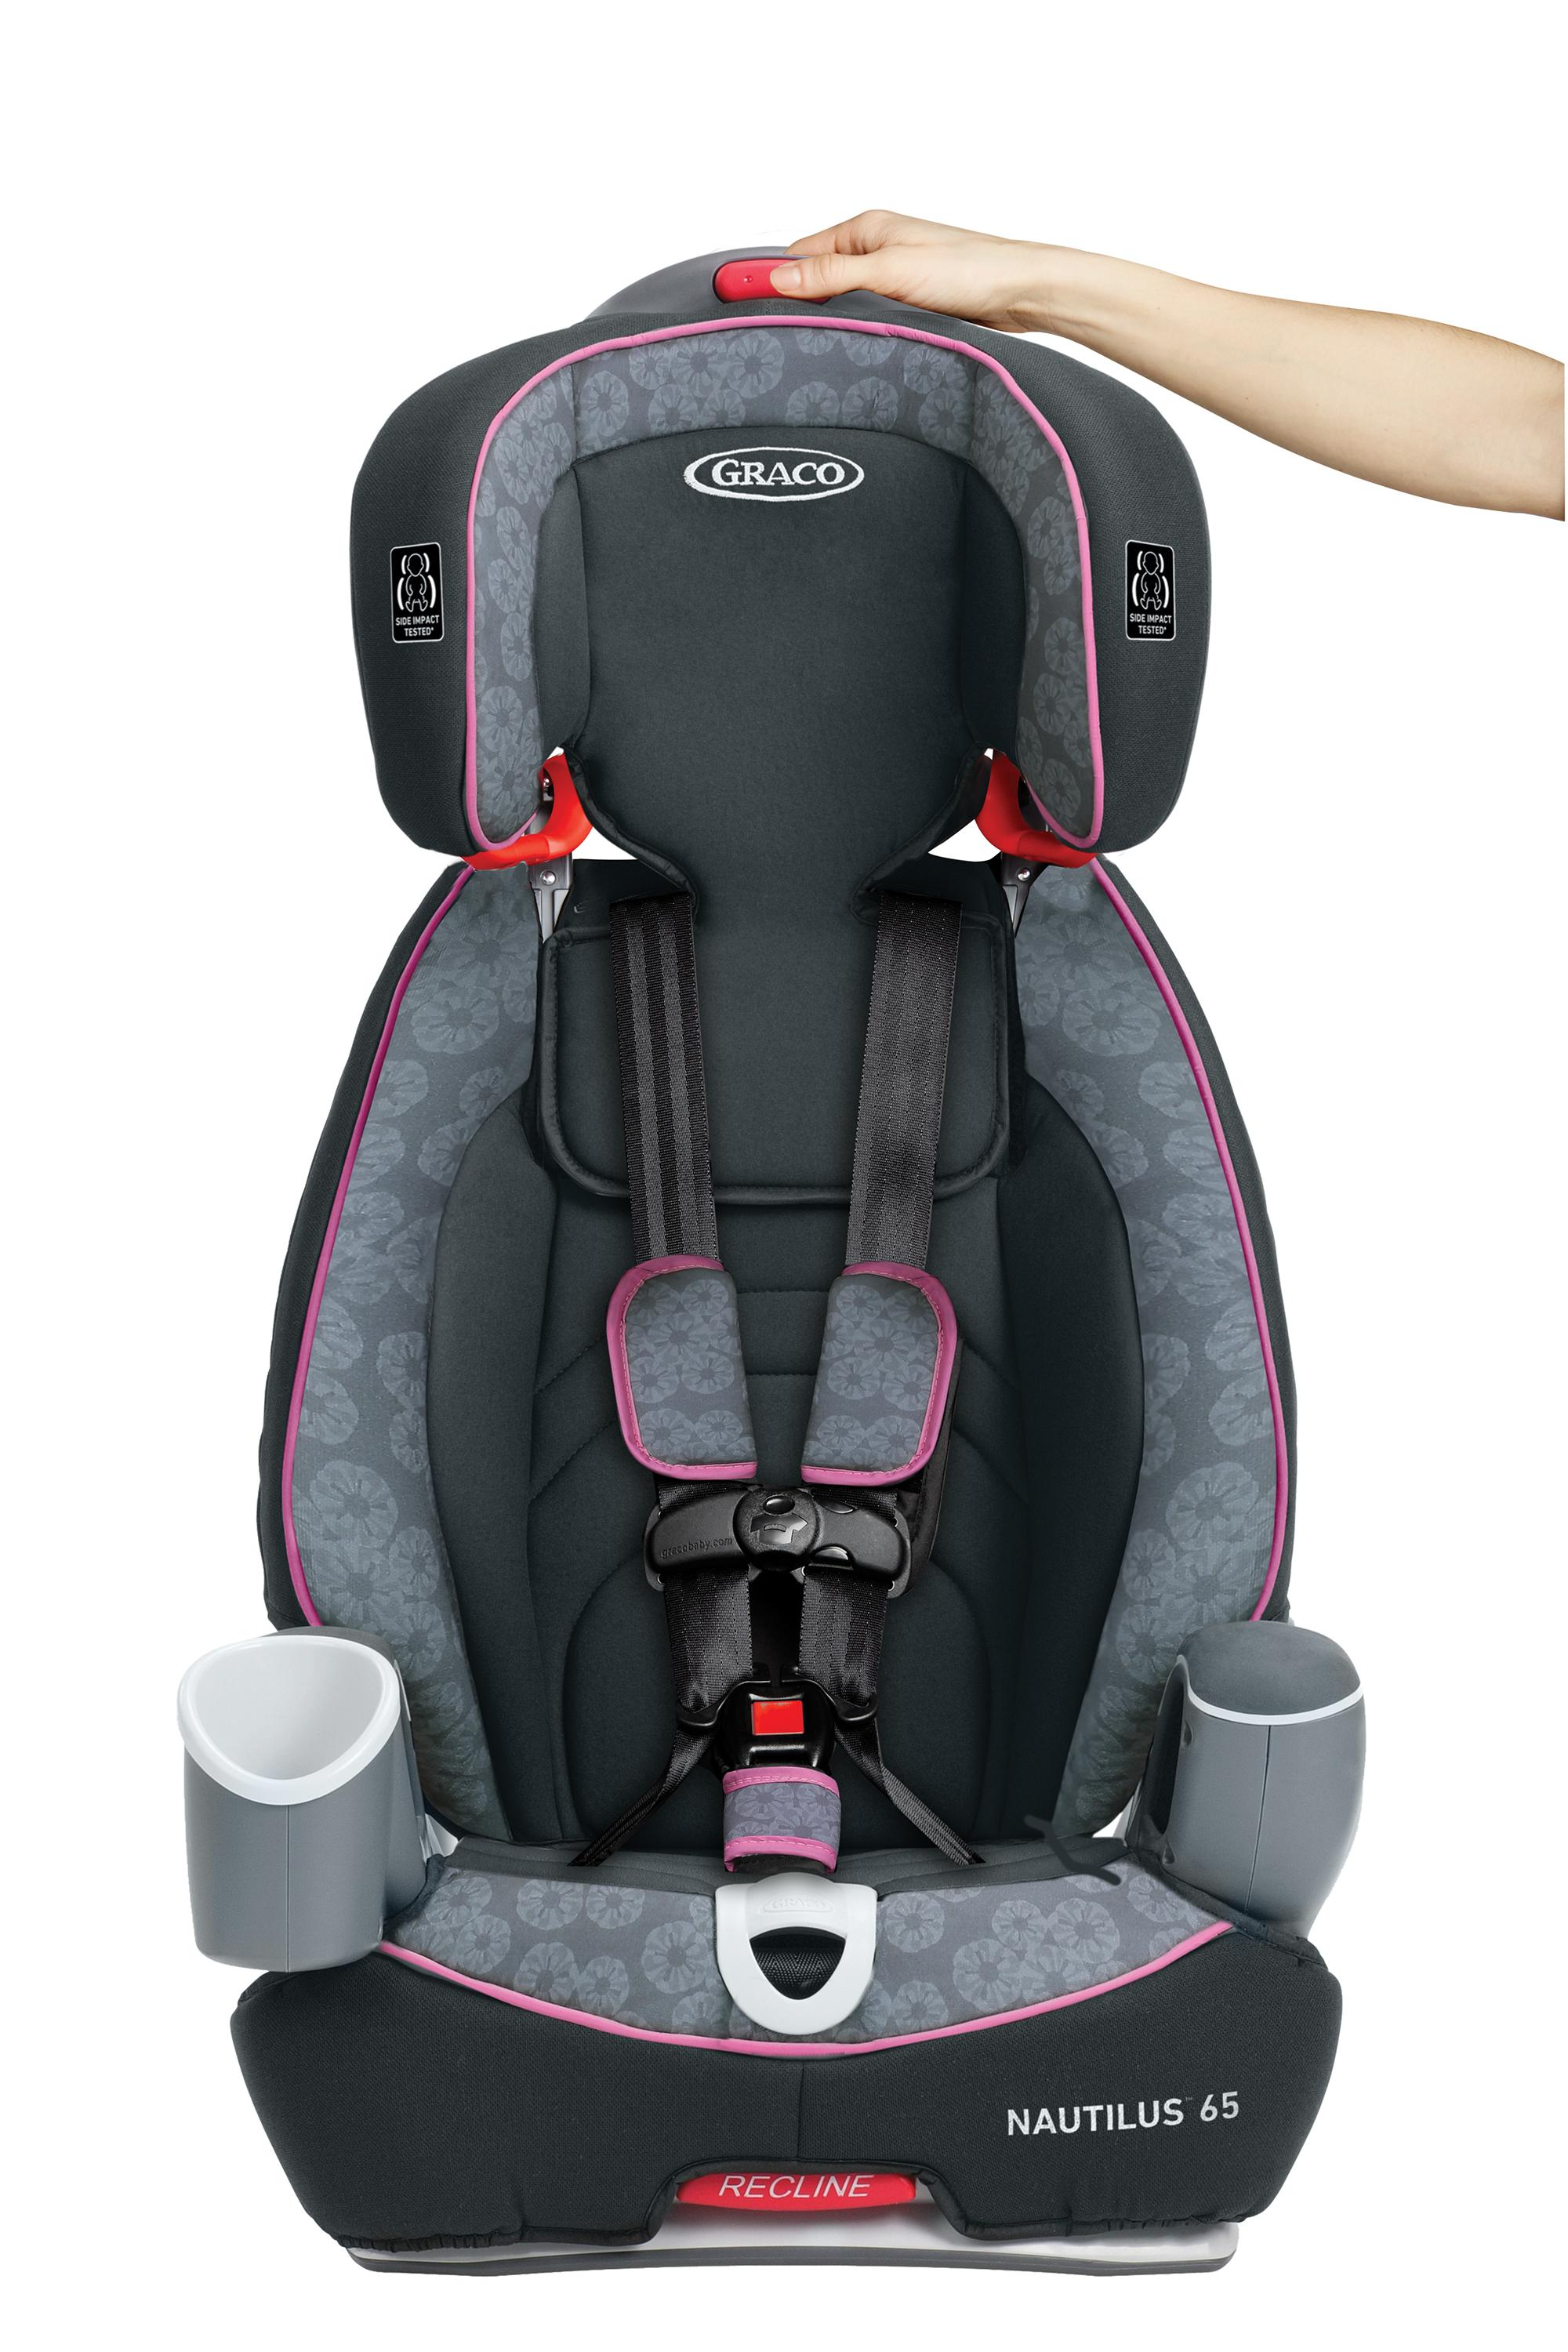 graco nautilus 65 3 in 1 harness booster car seat fern baby. Black Bedroom Furniture Sets. Home Design Ideas